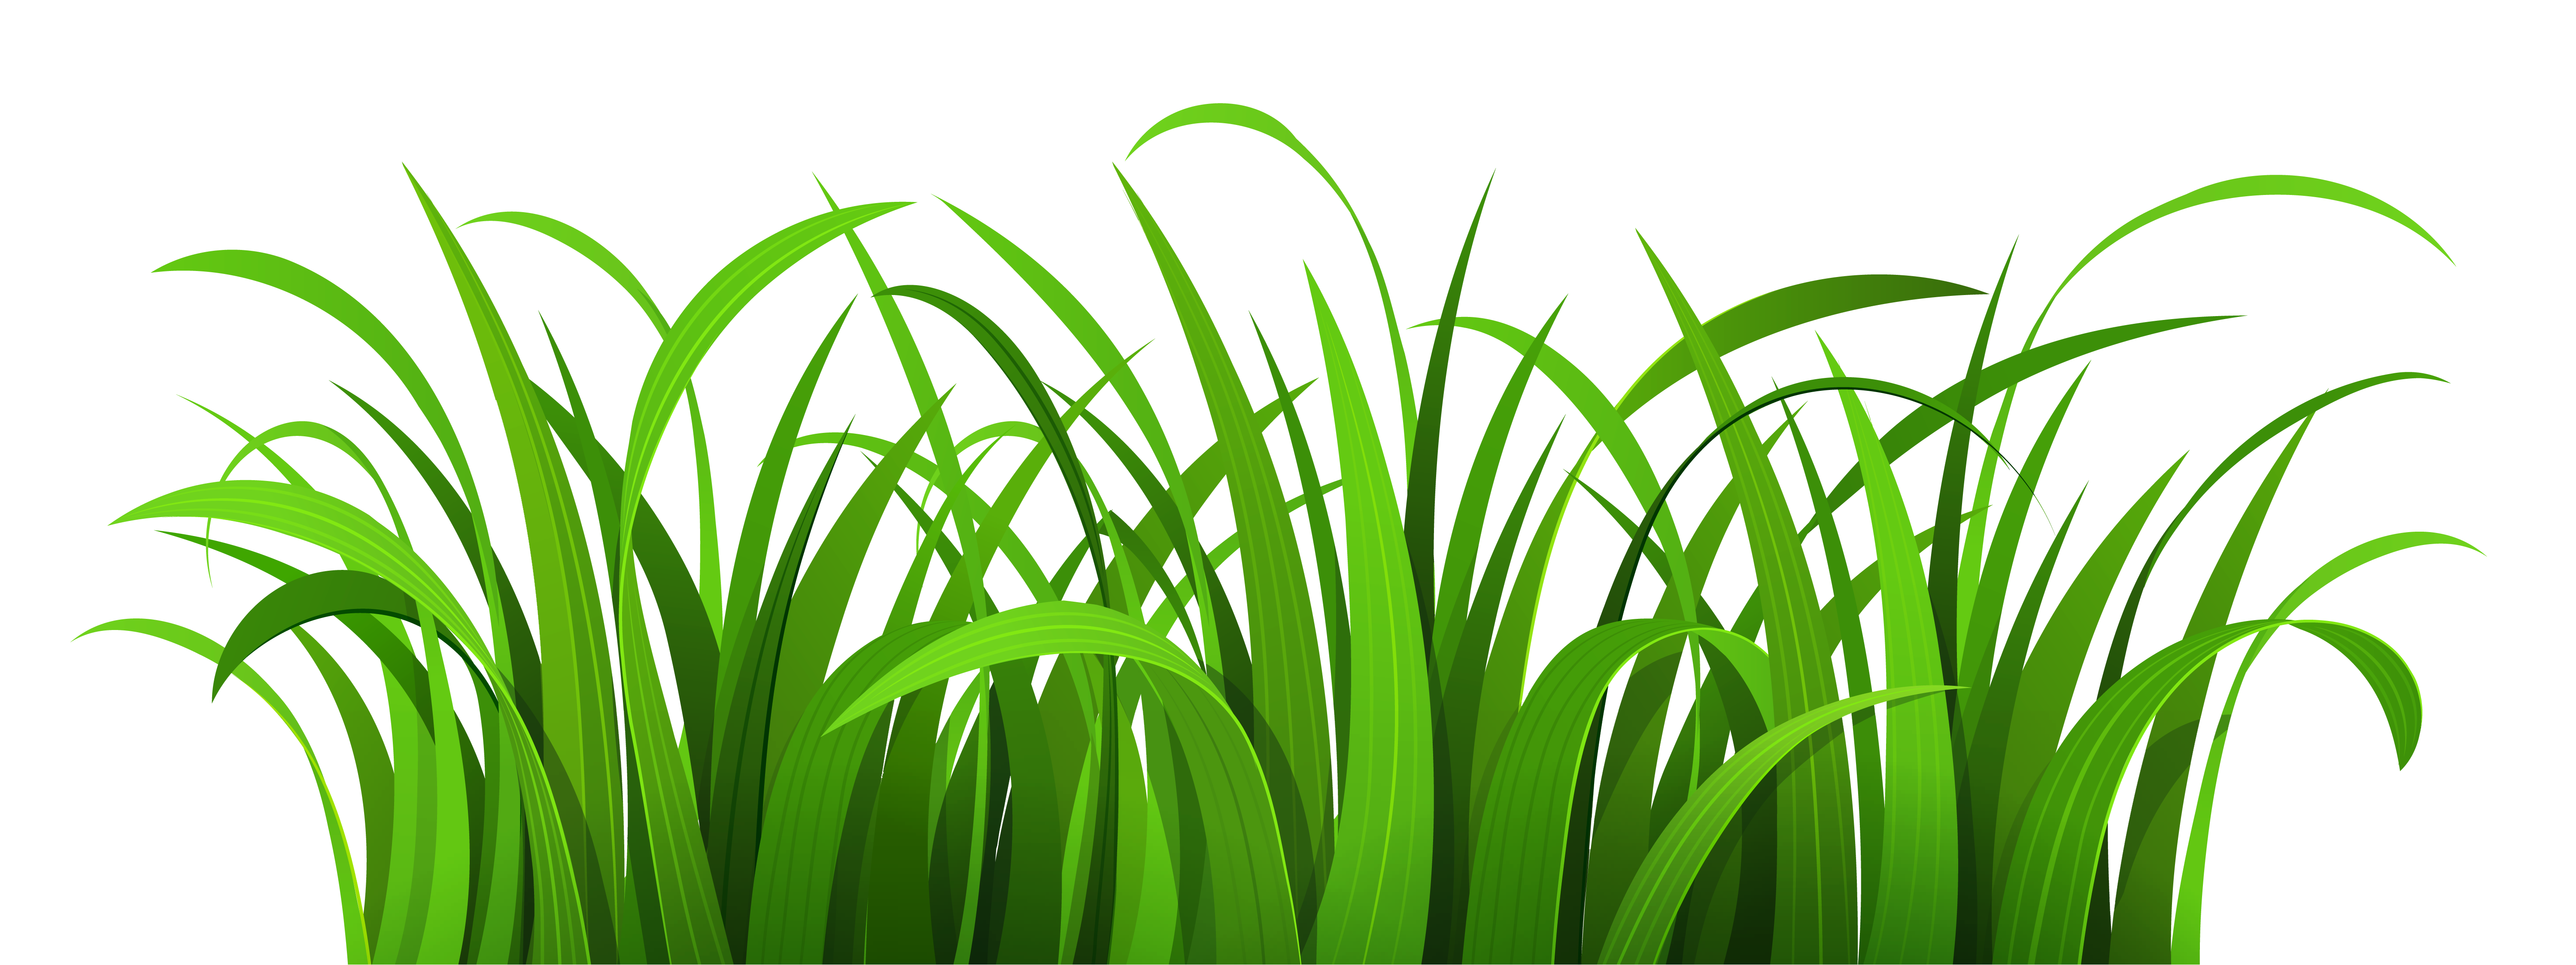 Grass clipart background clip free download Blog Clip art - Grass Patch PNG Clipart png download - 6000*2247 ... clip free download